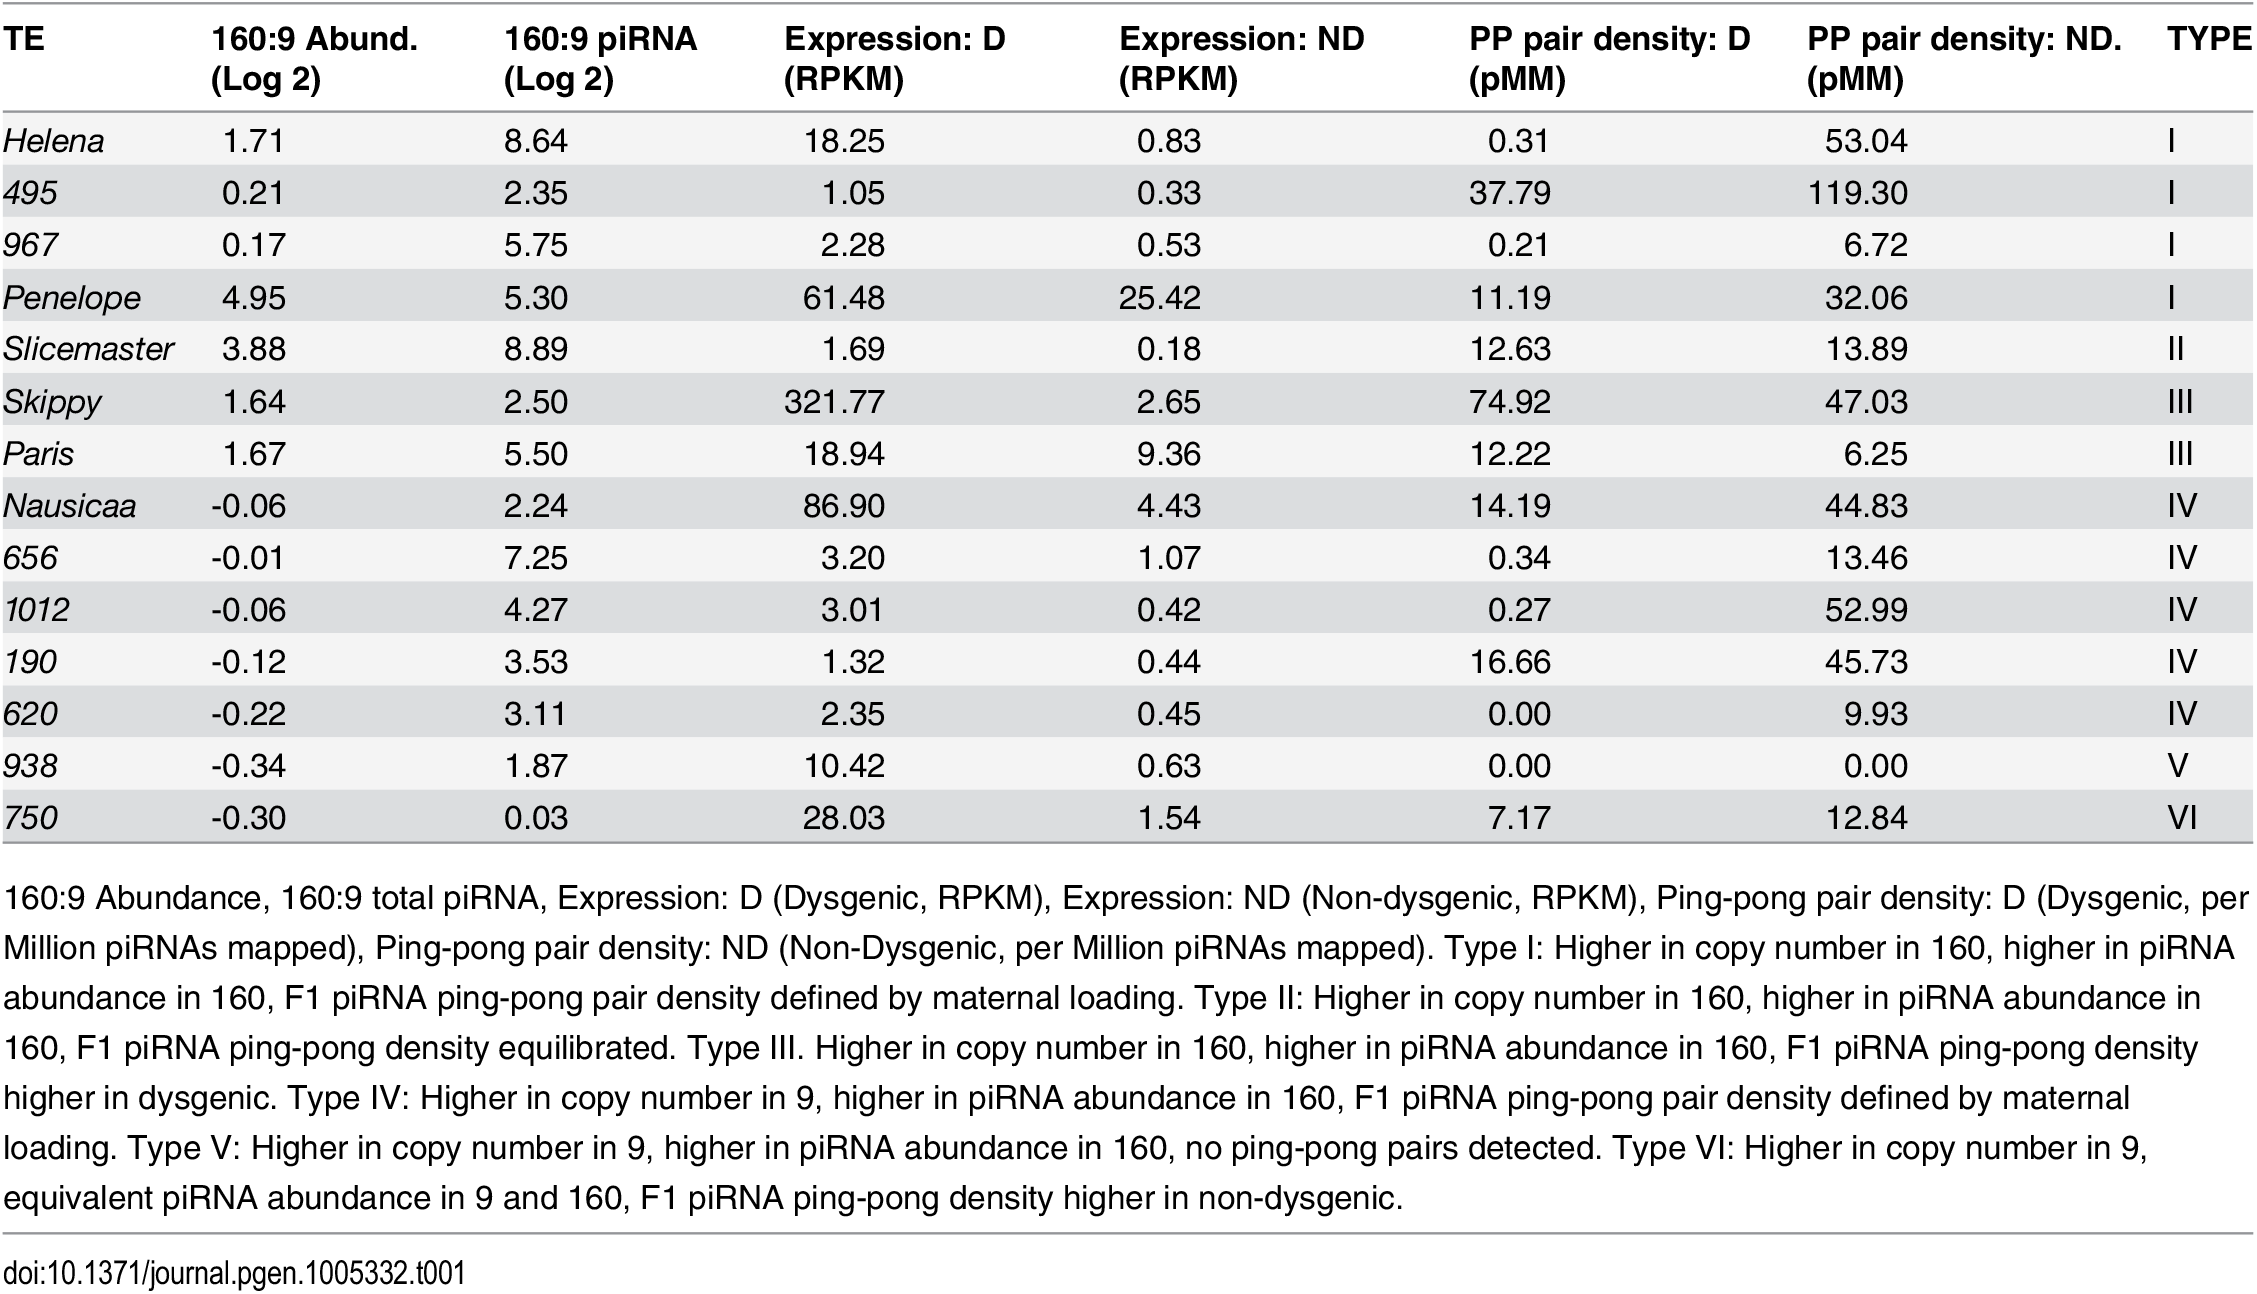 Properties of TEs significantly more expressed in the dysgenic germline by at last 2-fold (FDR<0.1).